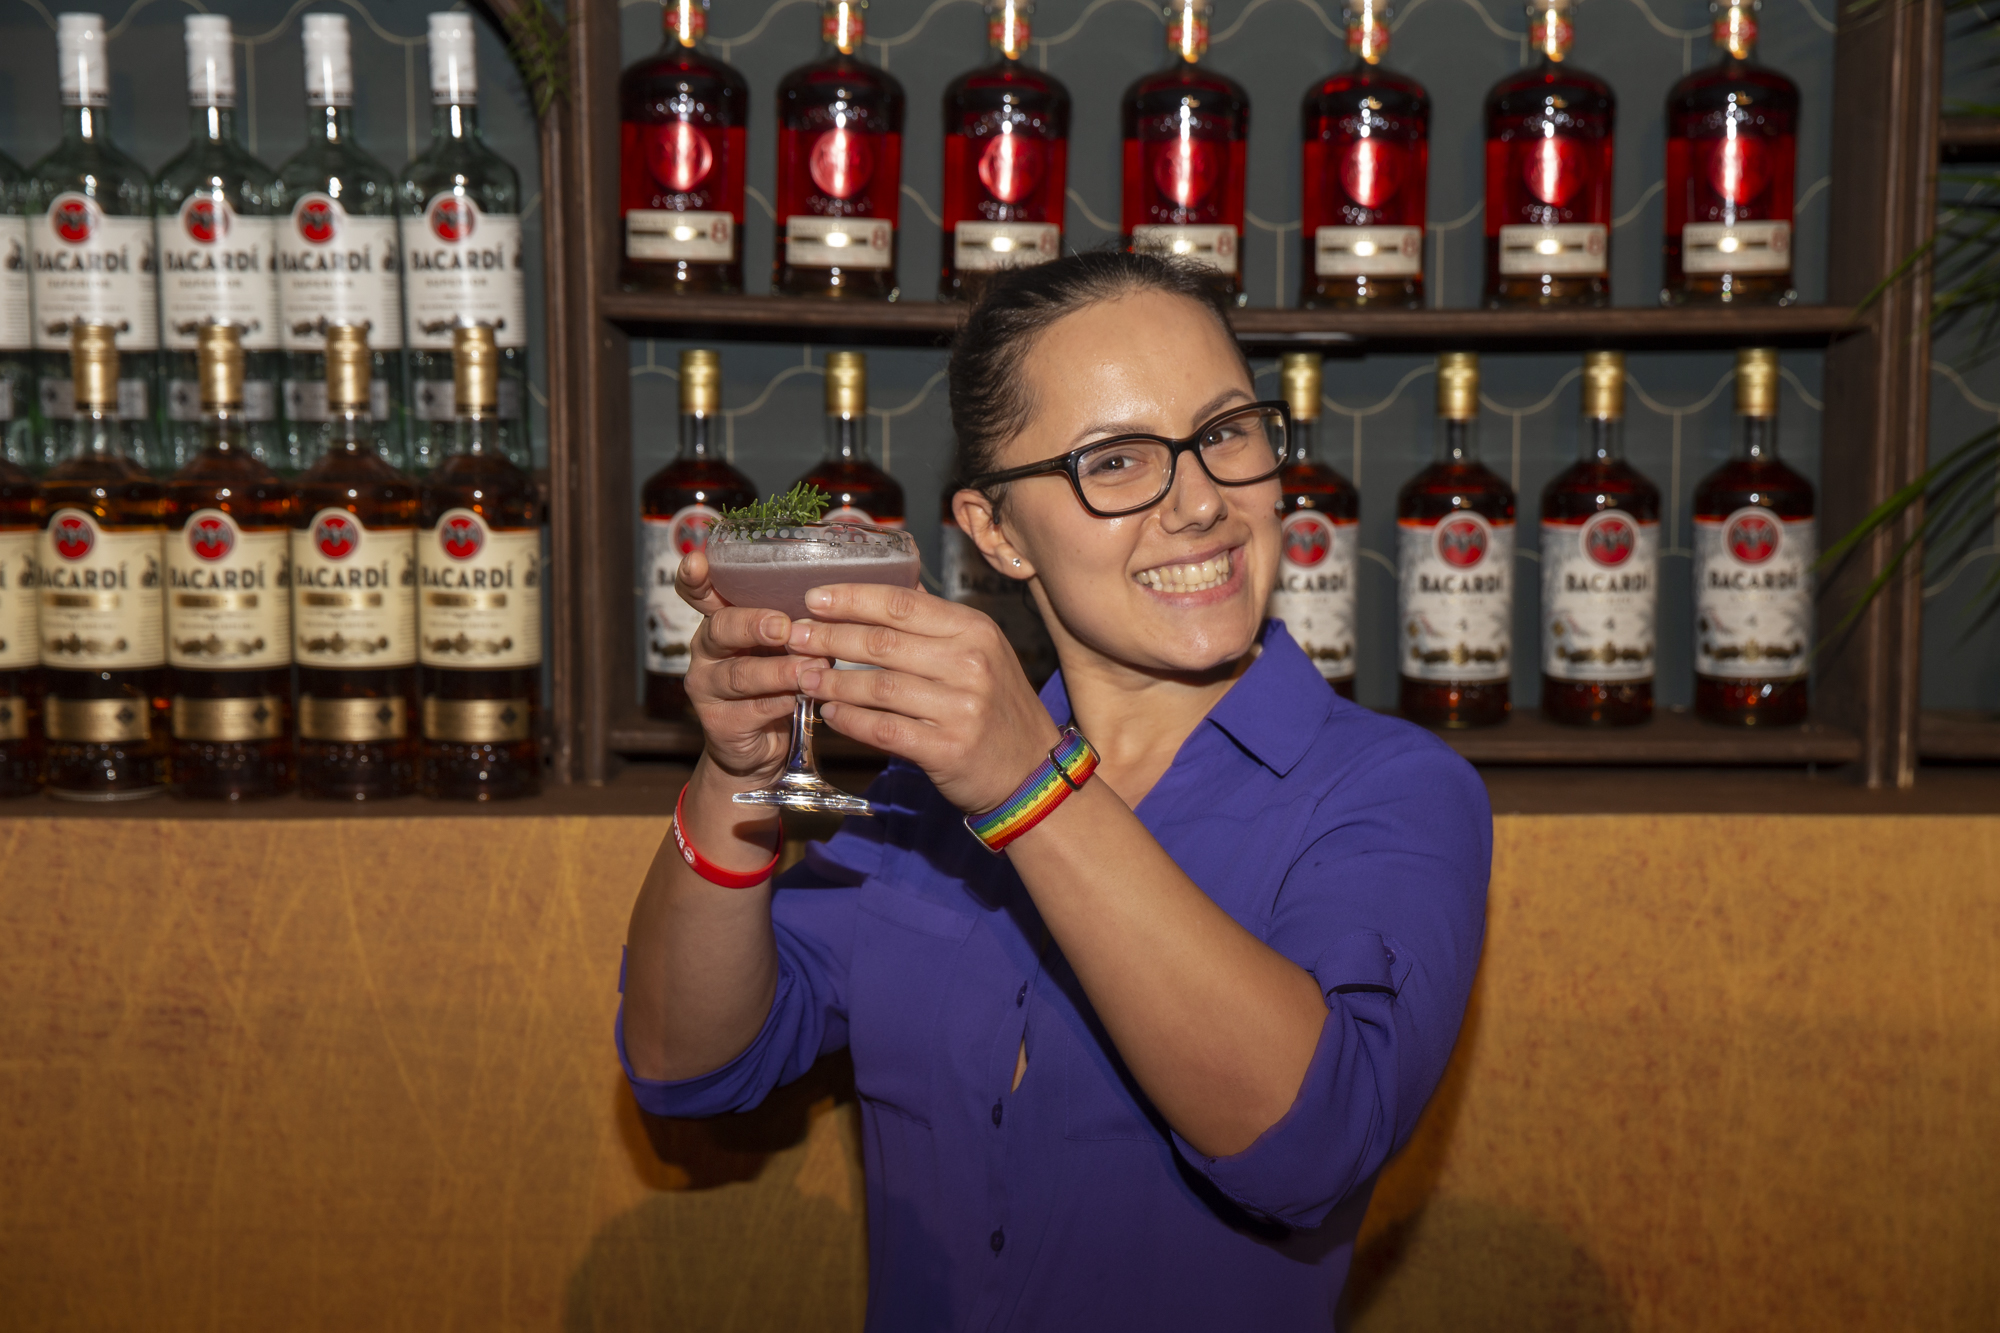 Carnival Cruise Line Mixologist Sanja Cvijetic Named 'Bartender of the Year' at the 2019 Bacardí Cruise Competition